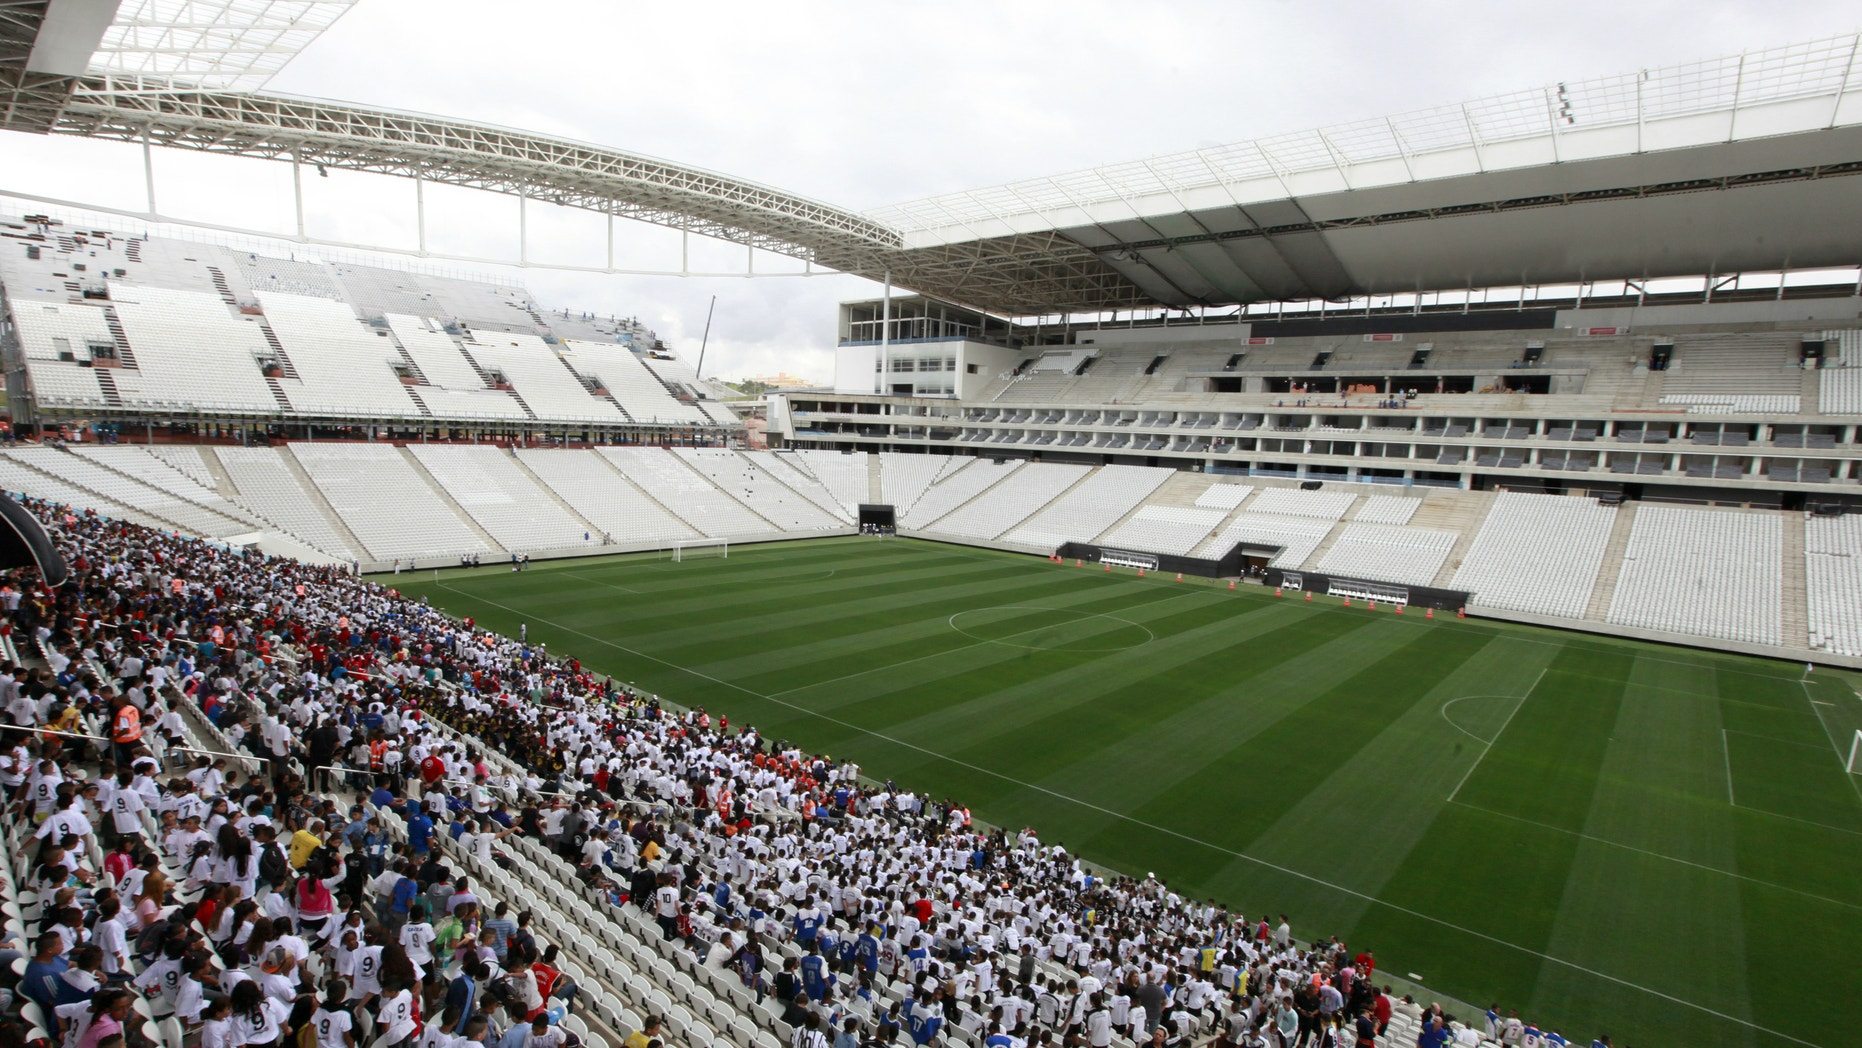 People stand in the bleachers during an infrastructure test at Arena de Sao Paulo Stadium, one of the venues for the 2014 World Cup.